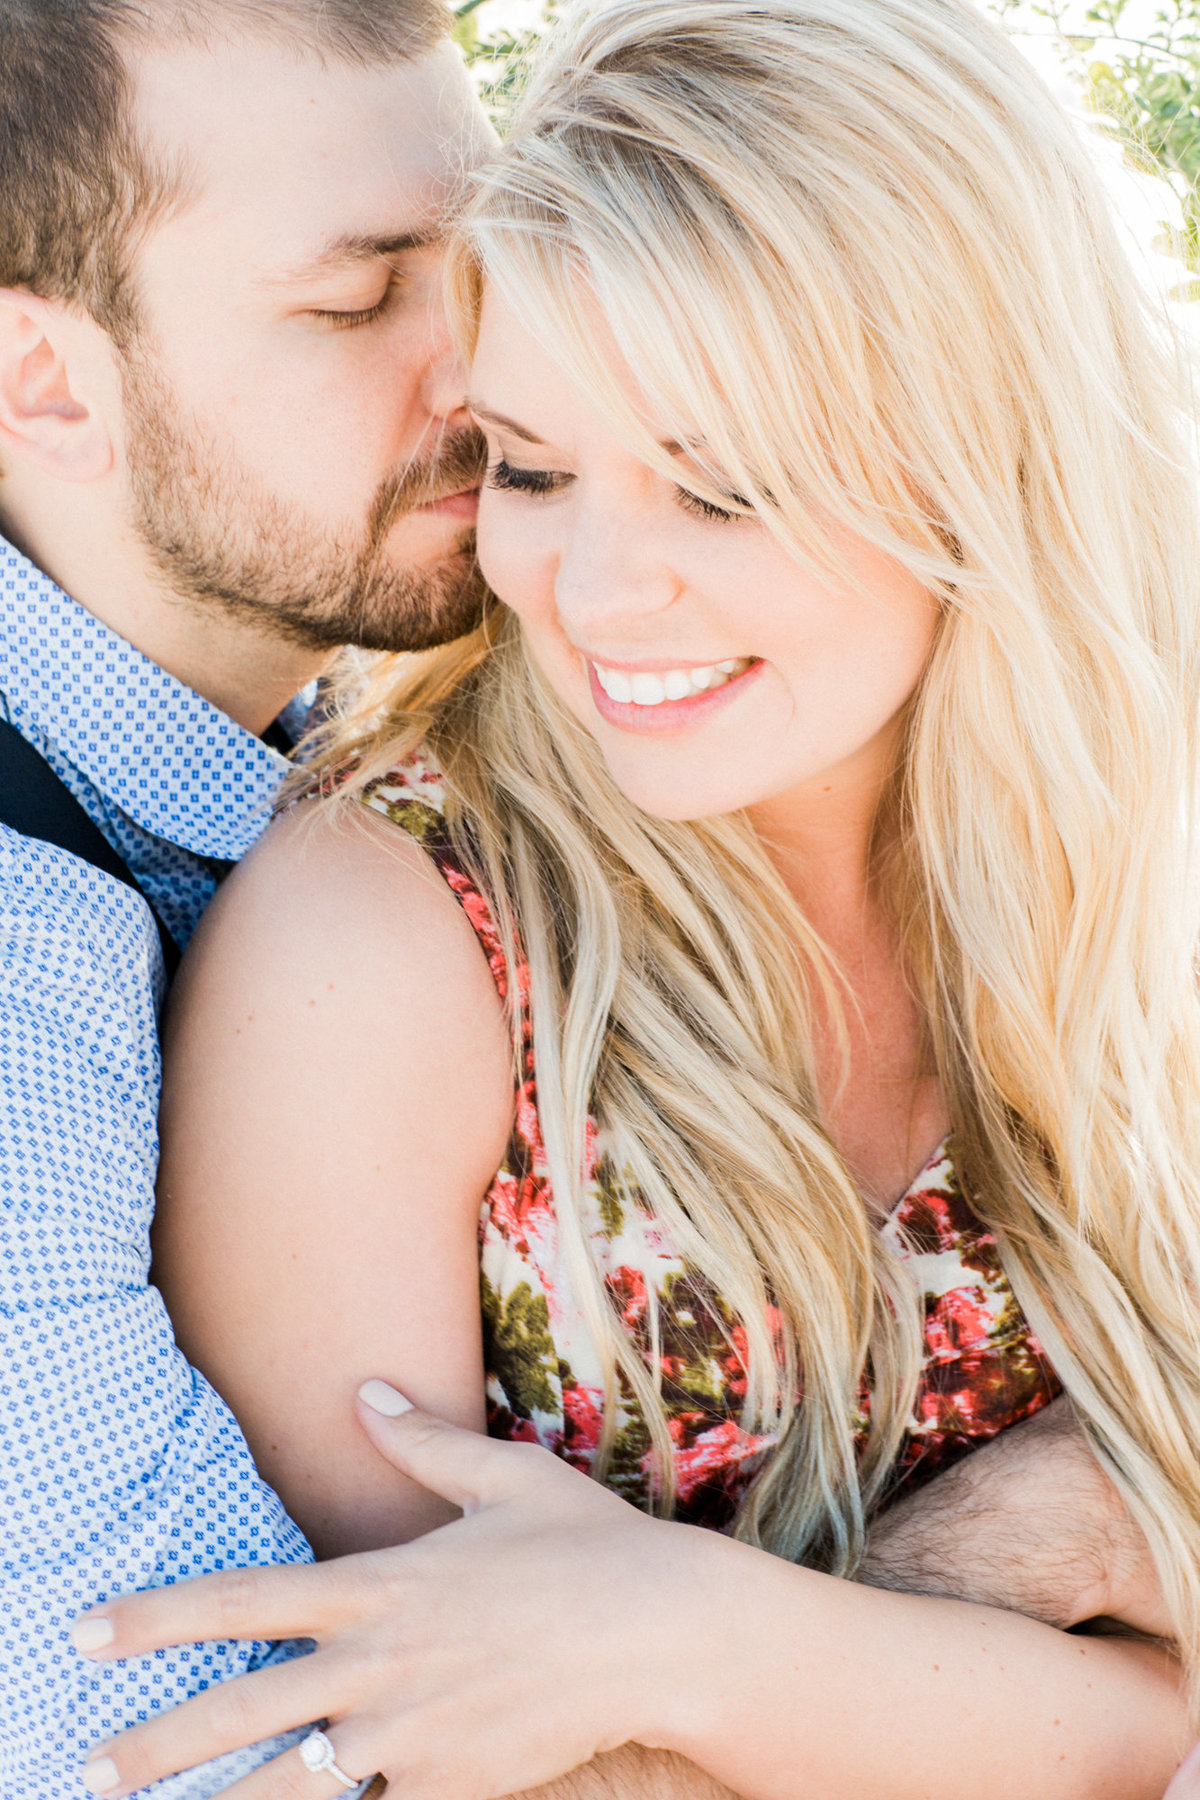 monterey_horse_beach_engagement_005